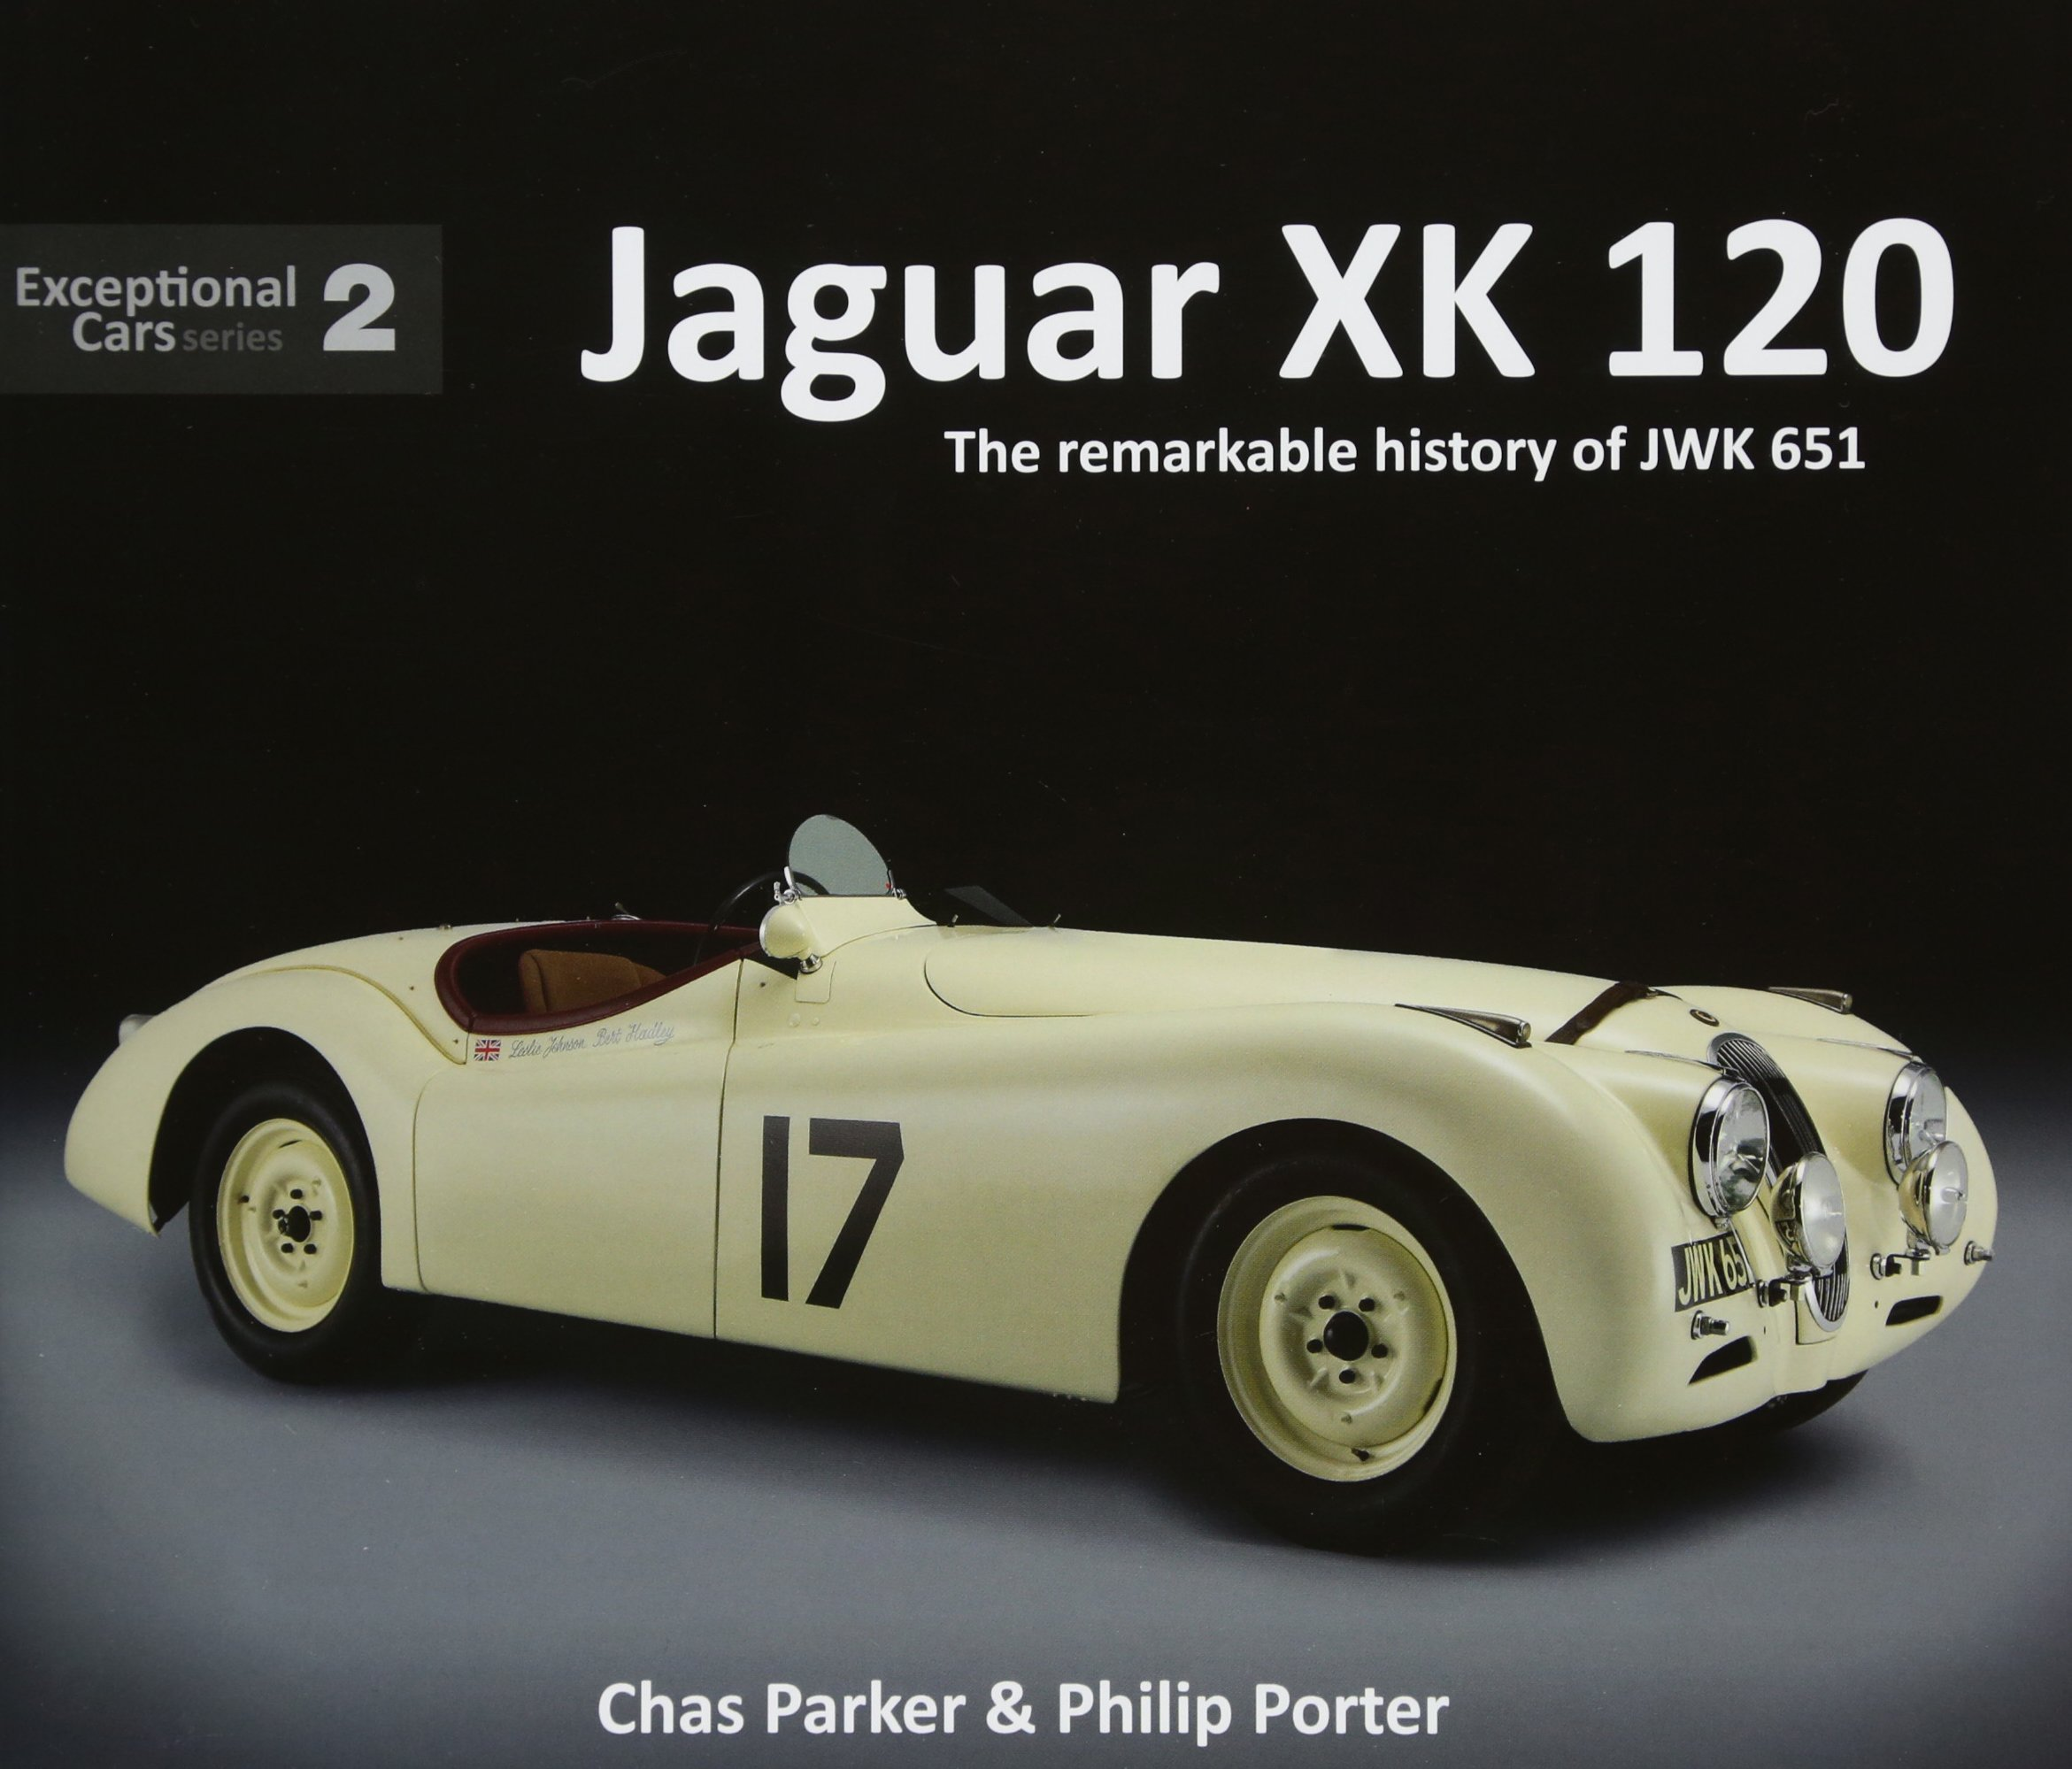 jaguar-xk-120-the-remarkable-history-of-jwk-651-exceptional-cars